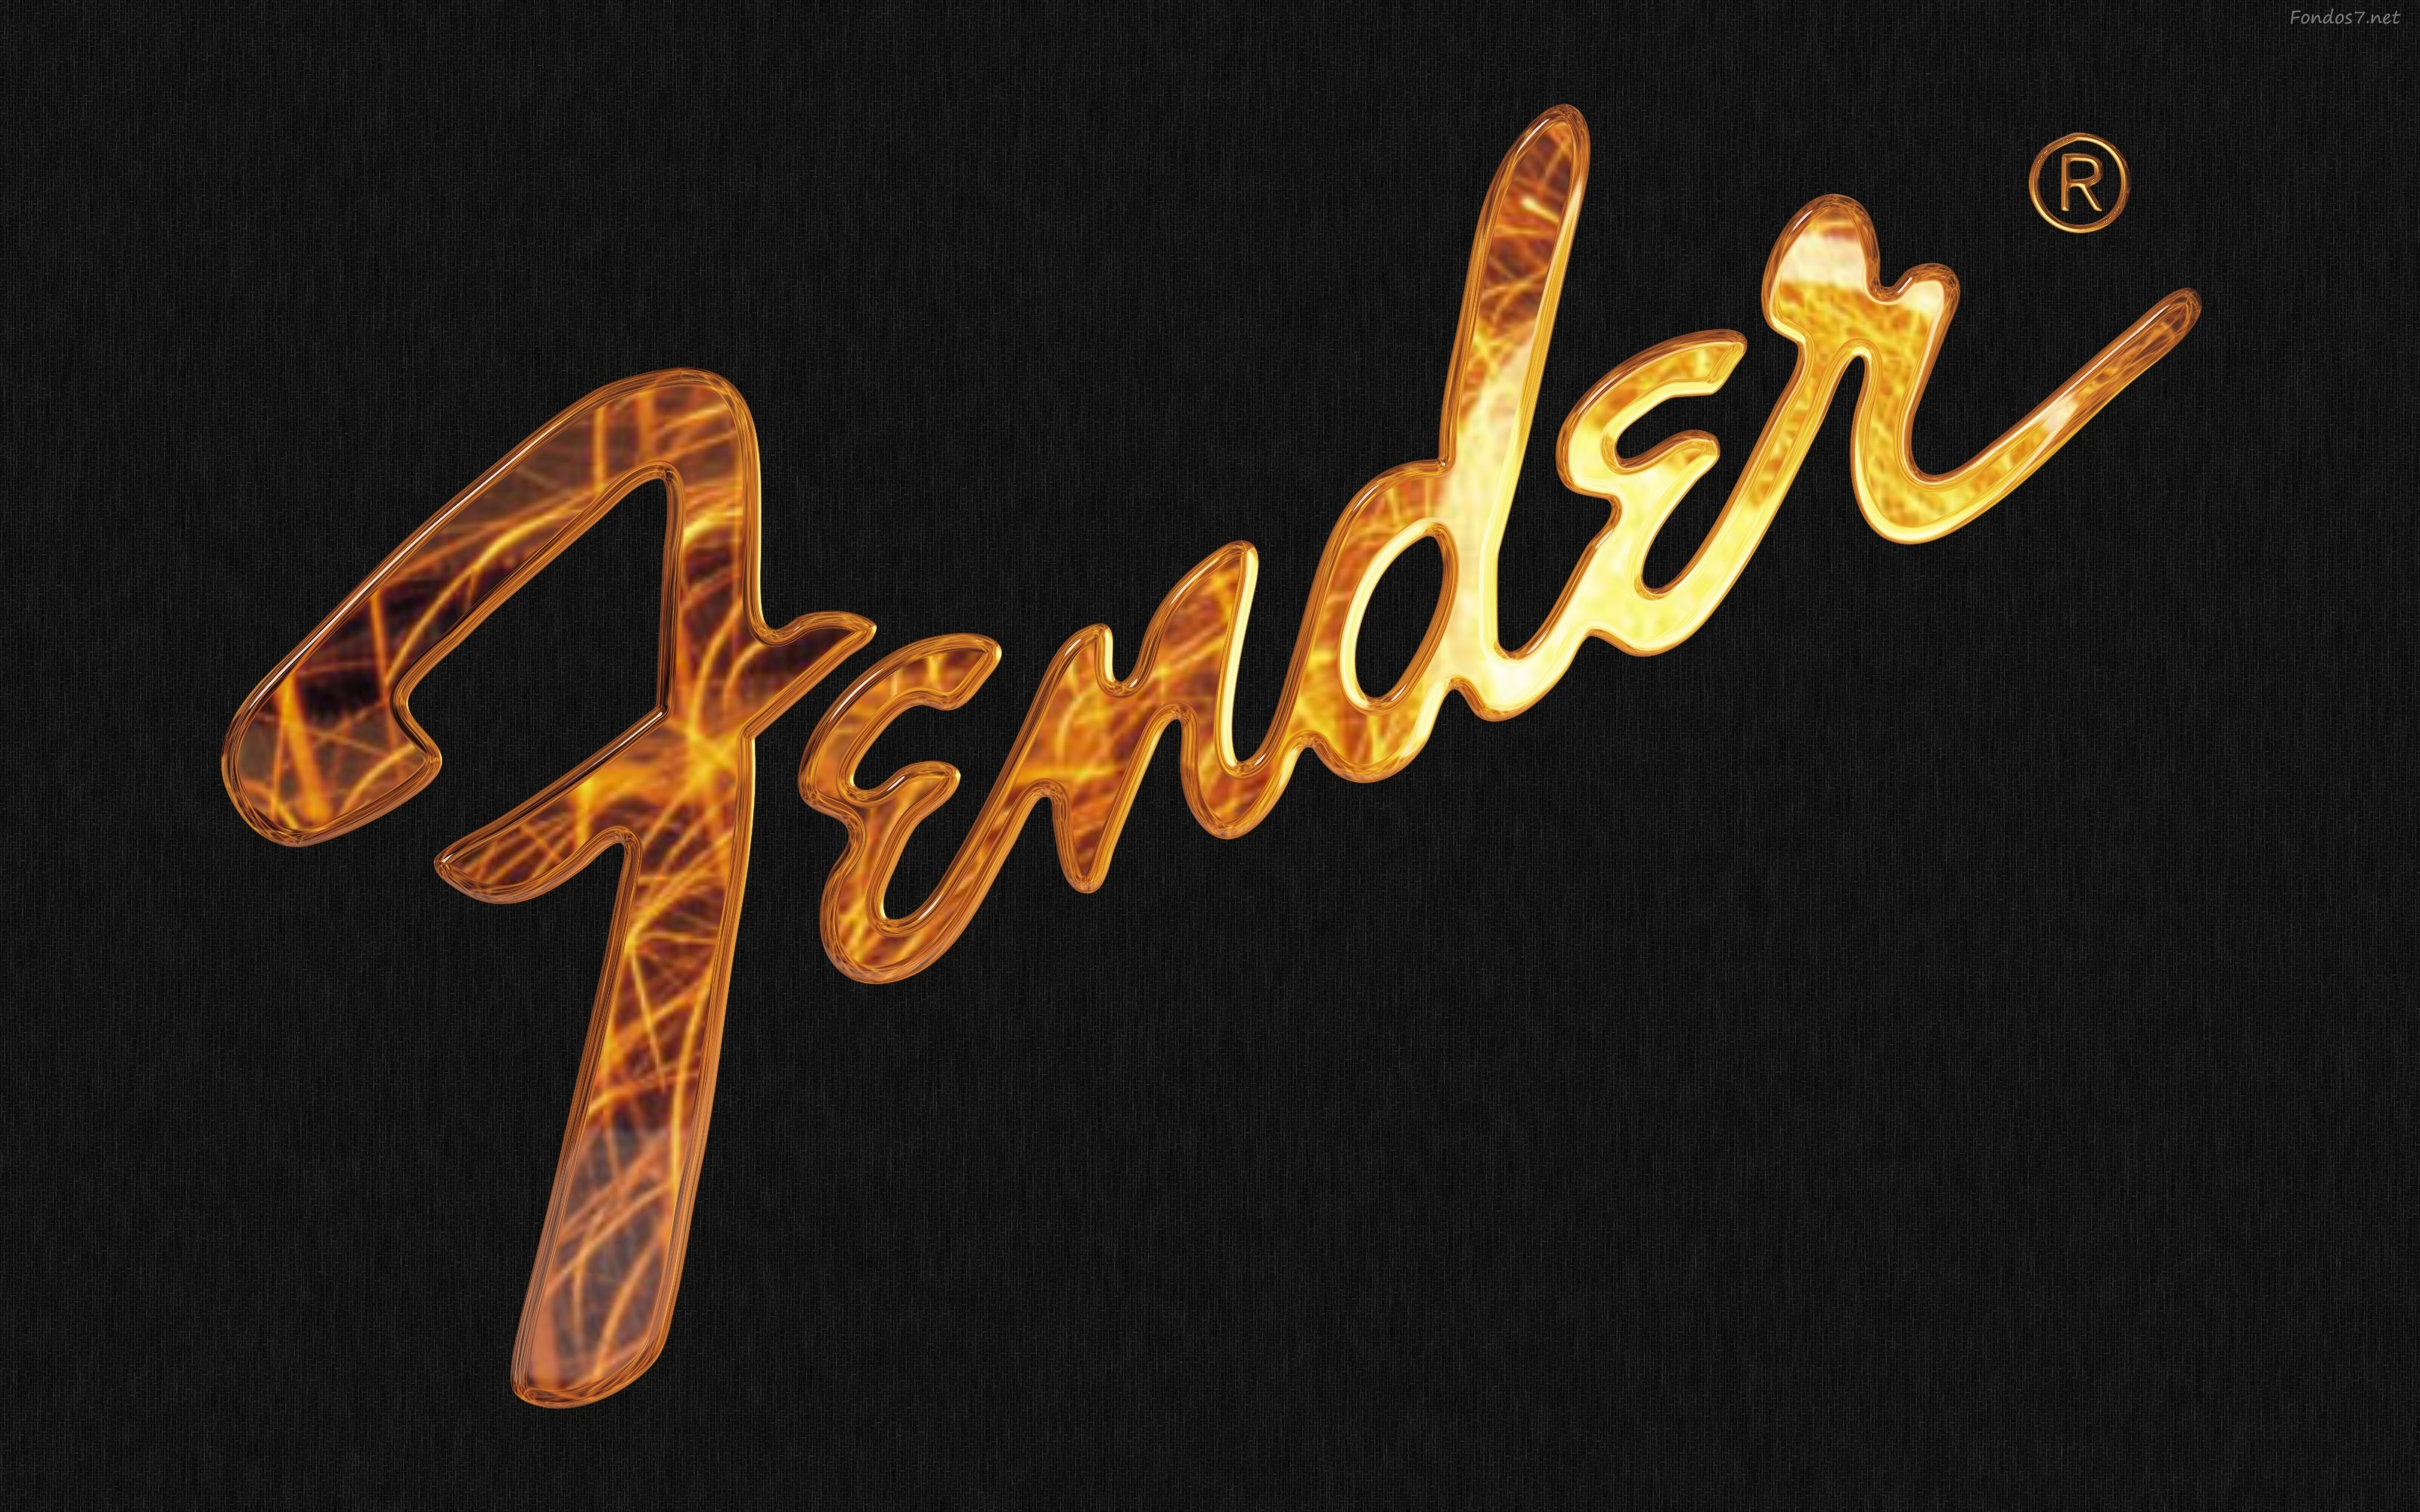 fender wallpaper 5821jpg 3200x2000